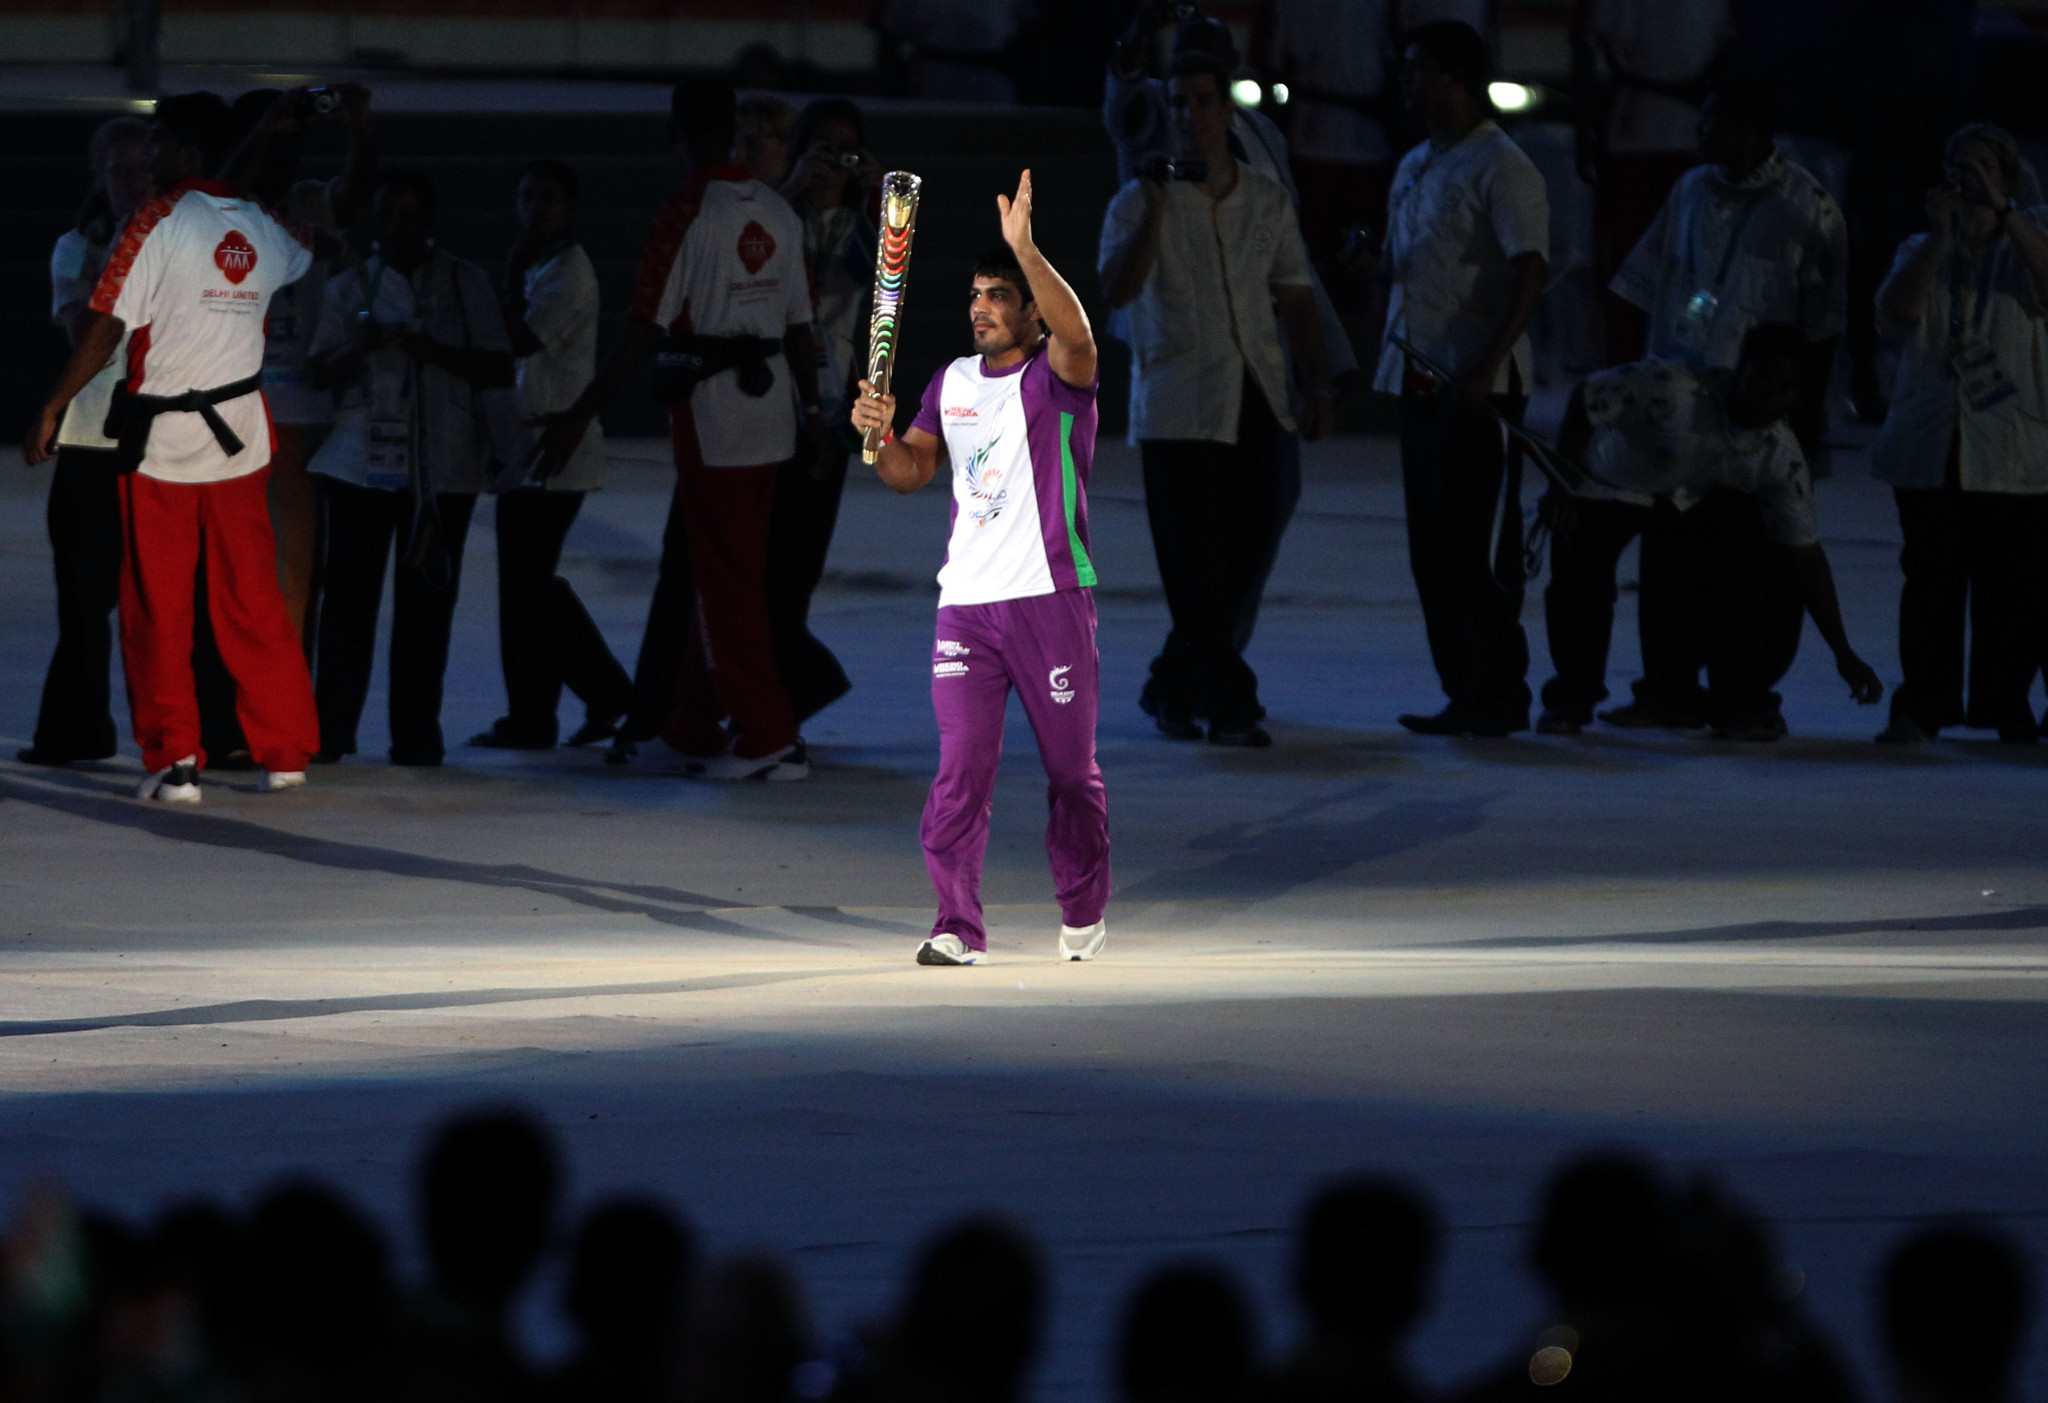 Sushil Kumar of India carries the Queen's baton during the Opening Ceremony for the Delhi 2010 Commonwealth Games at Jawaharlal Nehru Stadium ©Getty Images